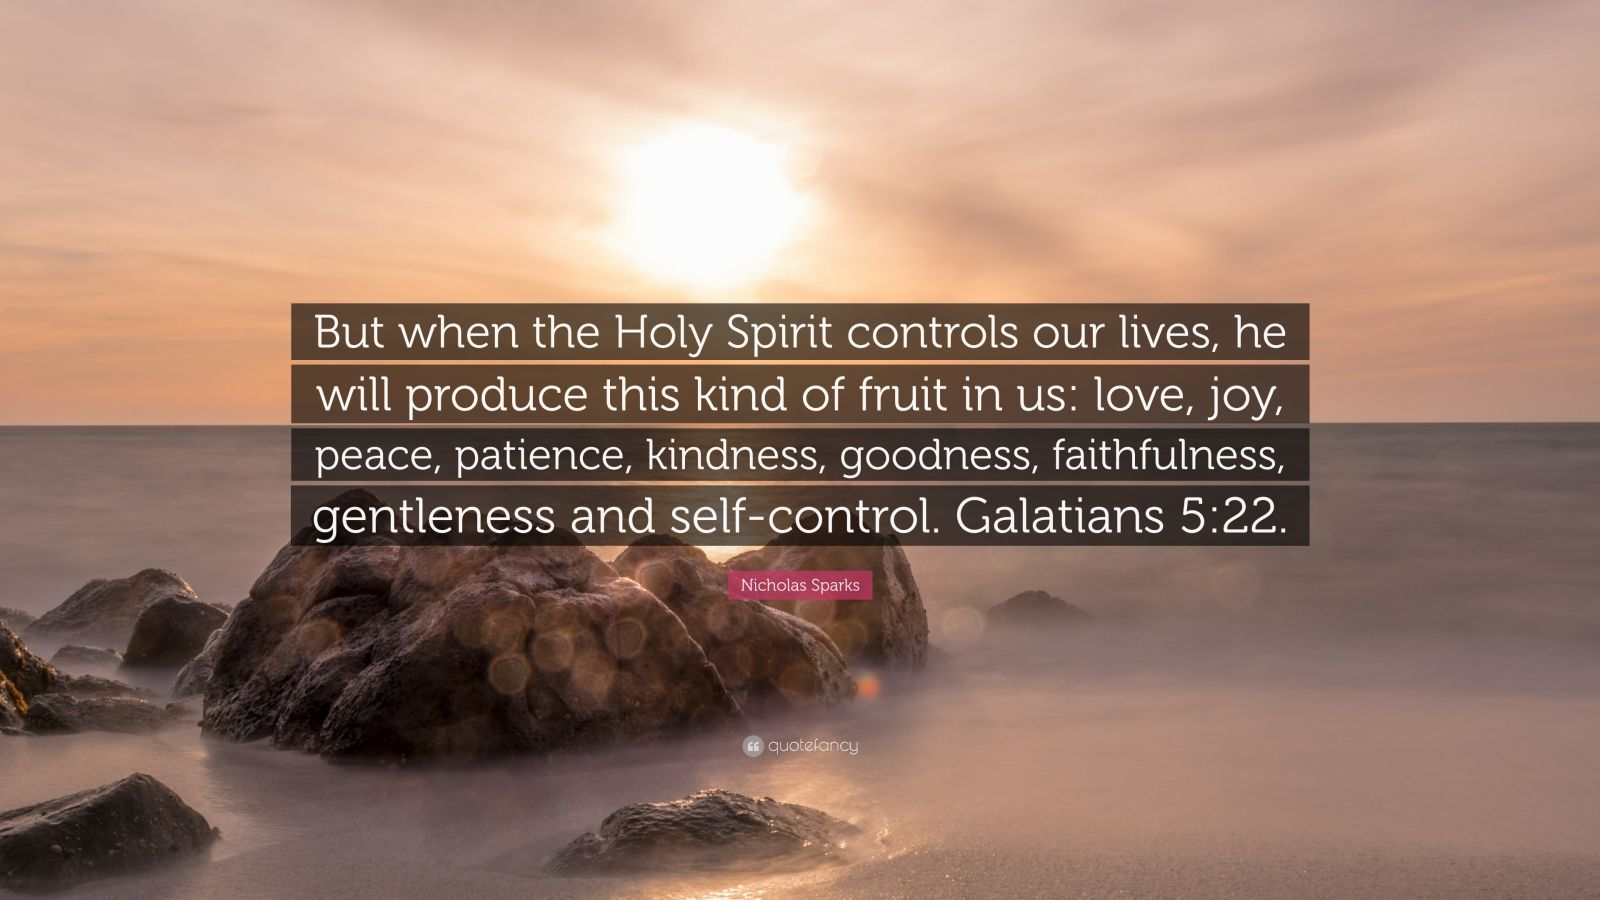 "Nicholas Sparks Quote: ""But when the Holy Spirit controls our lives, he will produce this kind of fruit in us: love, joy, peace, patience, kindness, goodness, faithfulness, gentleness and self-control. Galatians 5:22."""